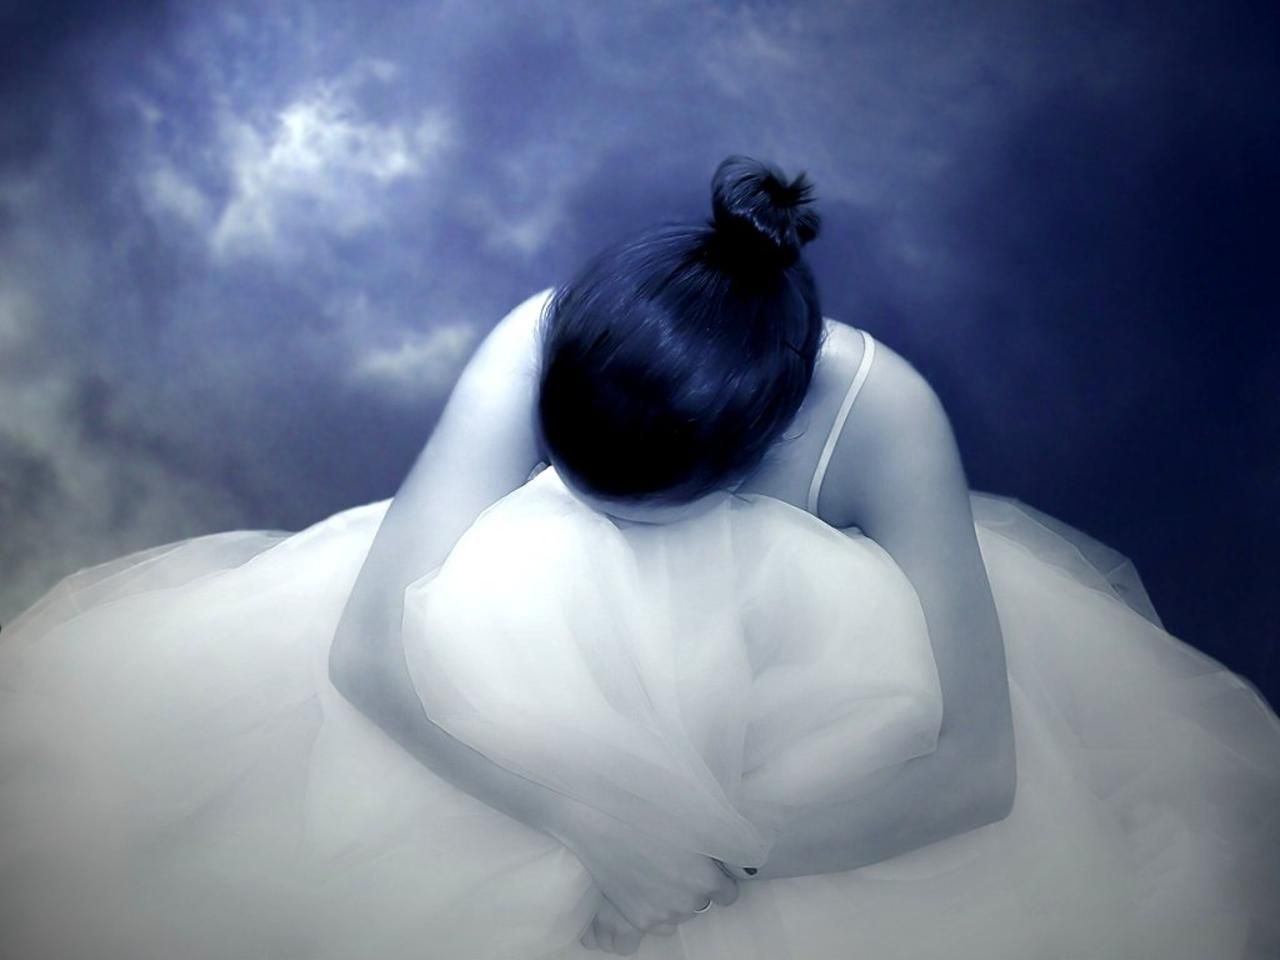 Dark Fantasy Facebook Covers: Free Download HD White Dress Sad Fantasy Dark Girl